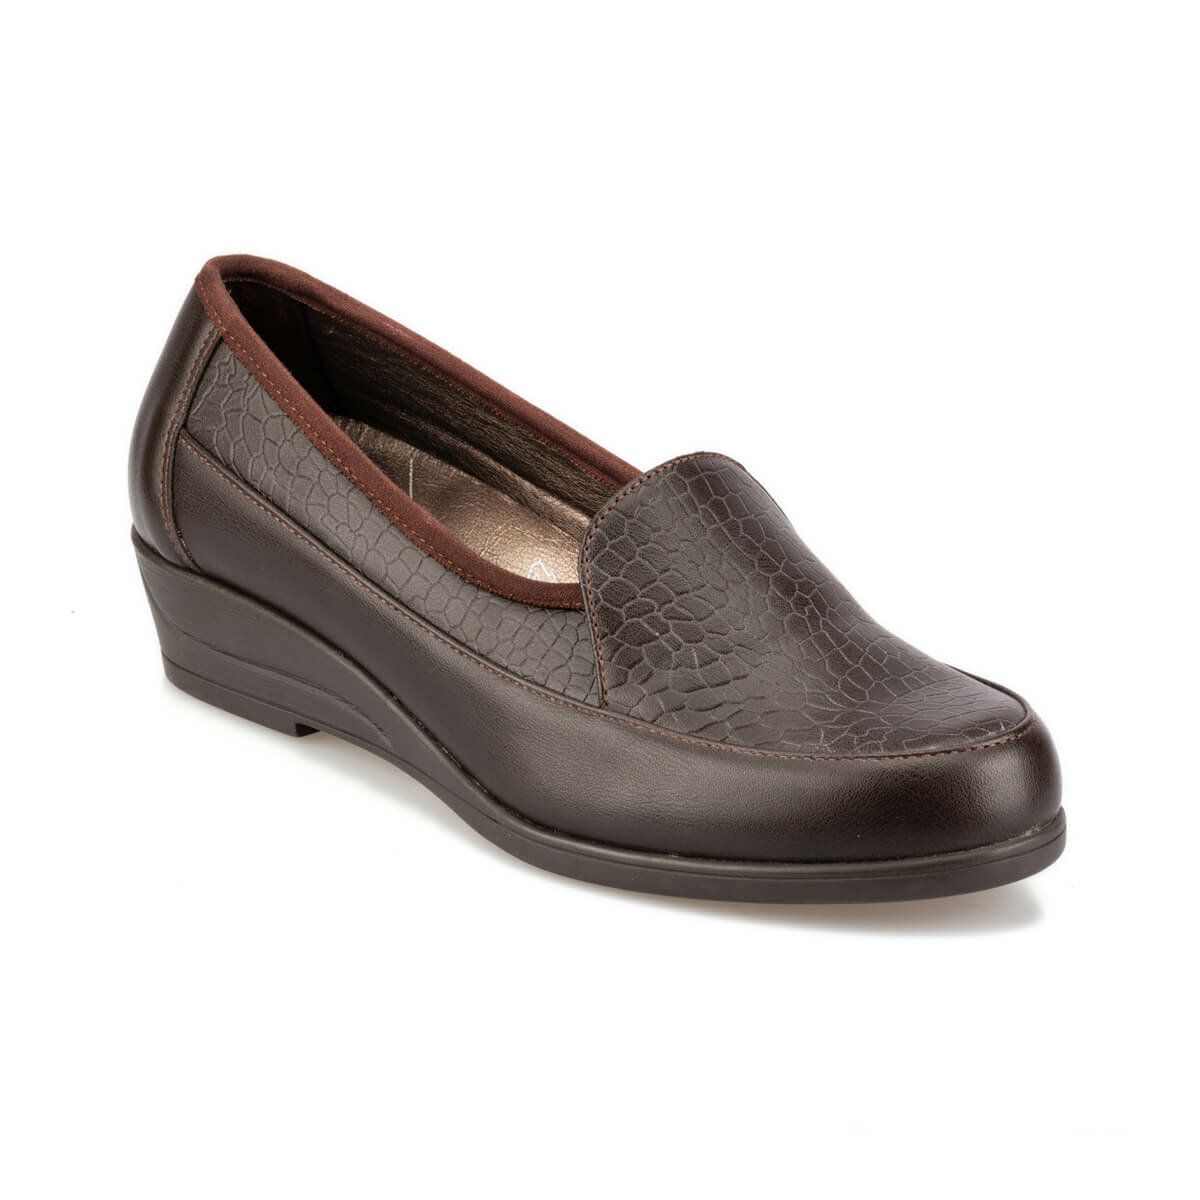 FLO 92.101023.Z Brown Women 'S Wedges Shoes Polaris 5 Point